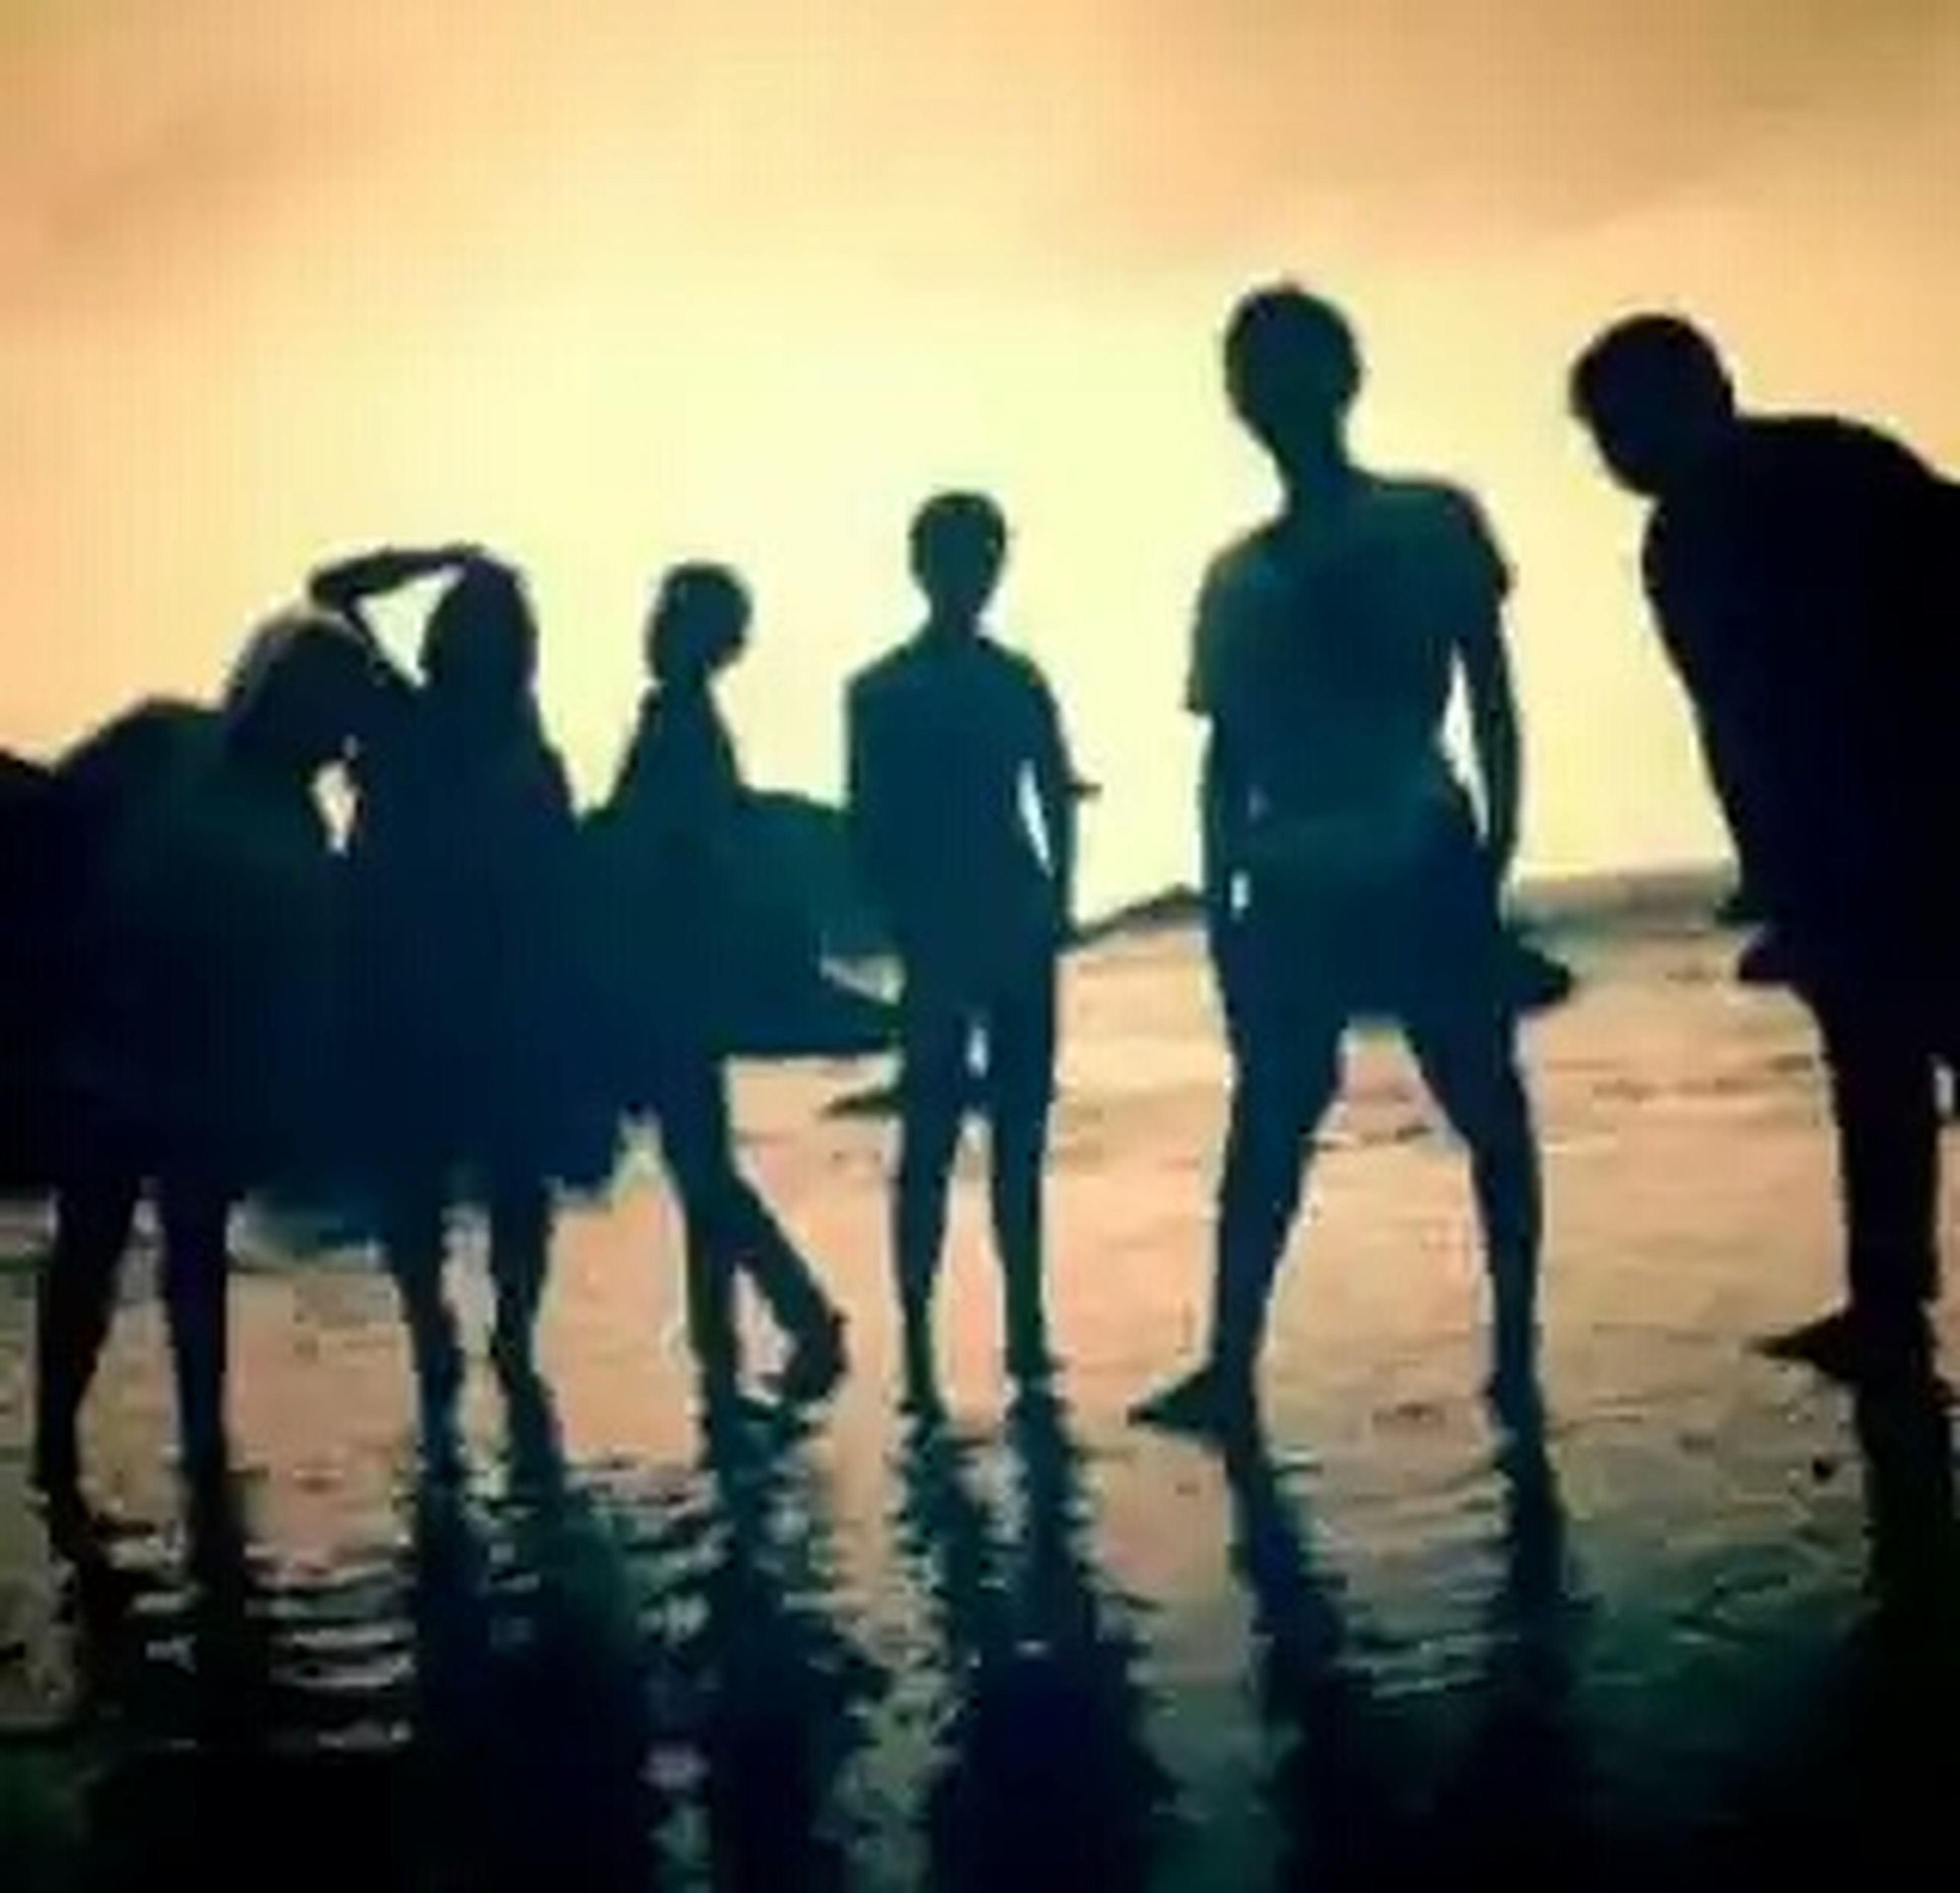 silhouette, beach, water, large group of people, men, sea, sunset, lifestyles, togetherness, leisure activity, person, reflection, walking, shore, sand, enjoyment, medium group of people, mixed age range, standing